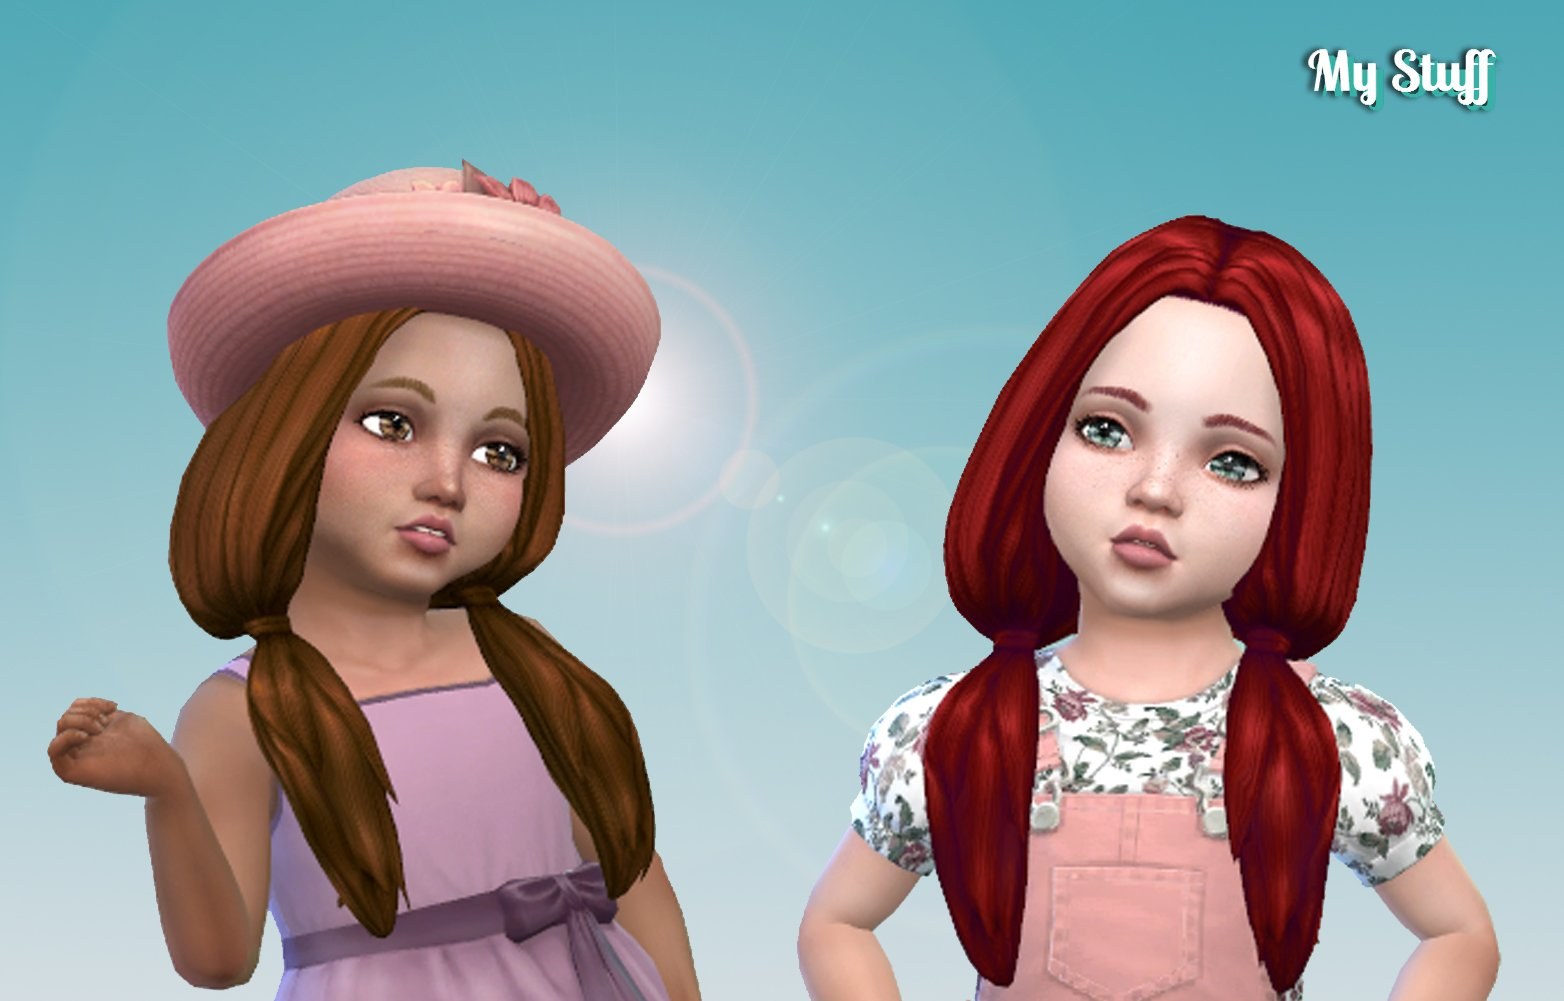 Candy Hairstyle for Toddlers